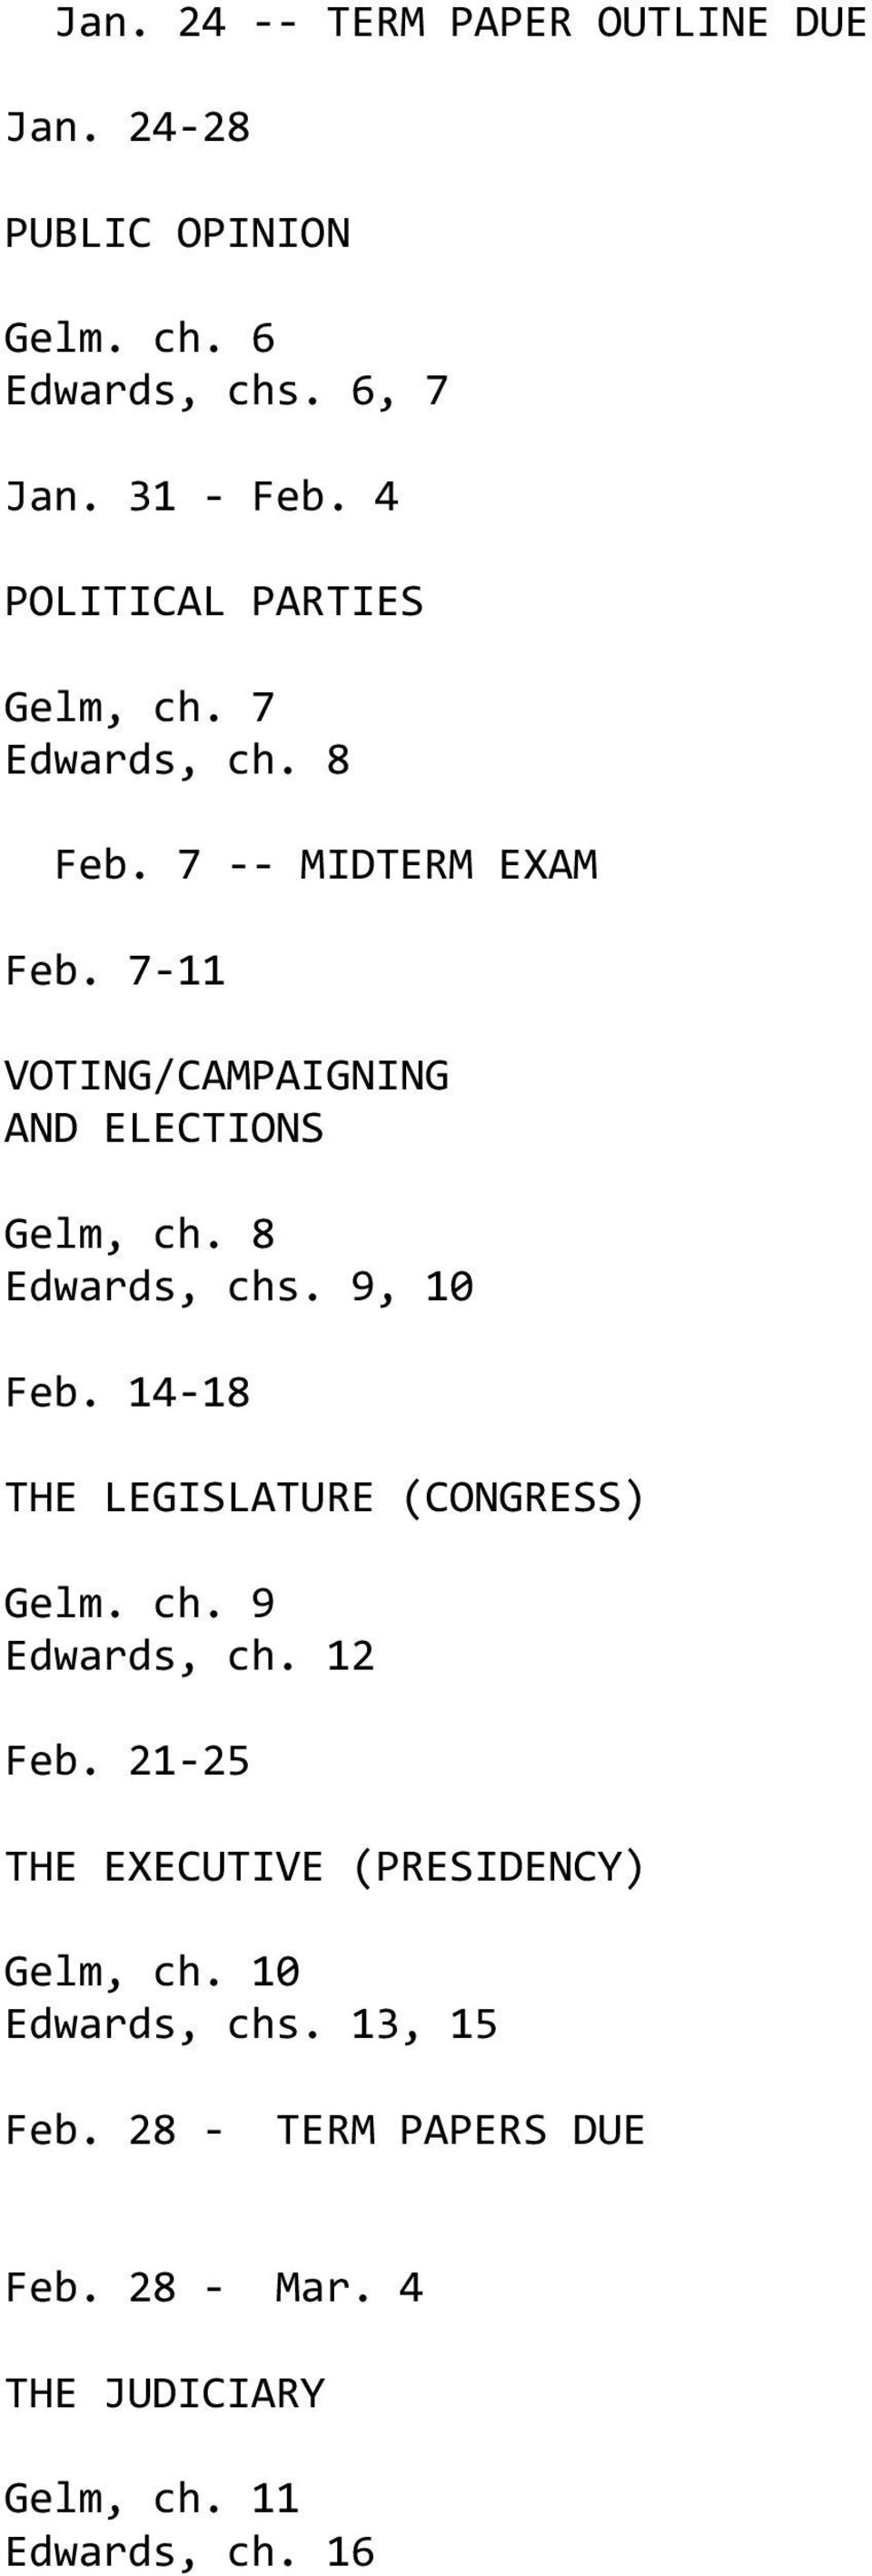 7-11 VOTING/CAMPAIGNING AND ELECTIONS Gelm, ch. 8 Edwards, chs. 9, 10 Feb. 14-18 THE LEGISLATURE (CONGRESS) Gelm. ch. 9 Edwards, ch.